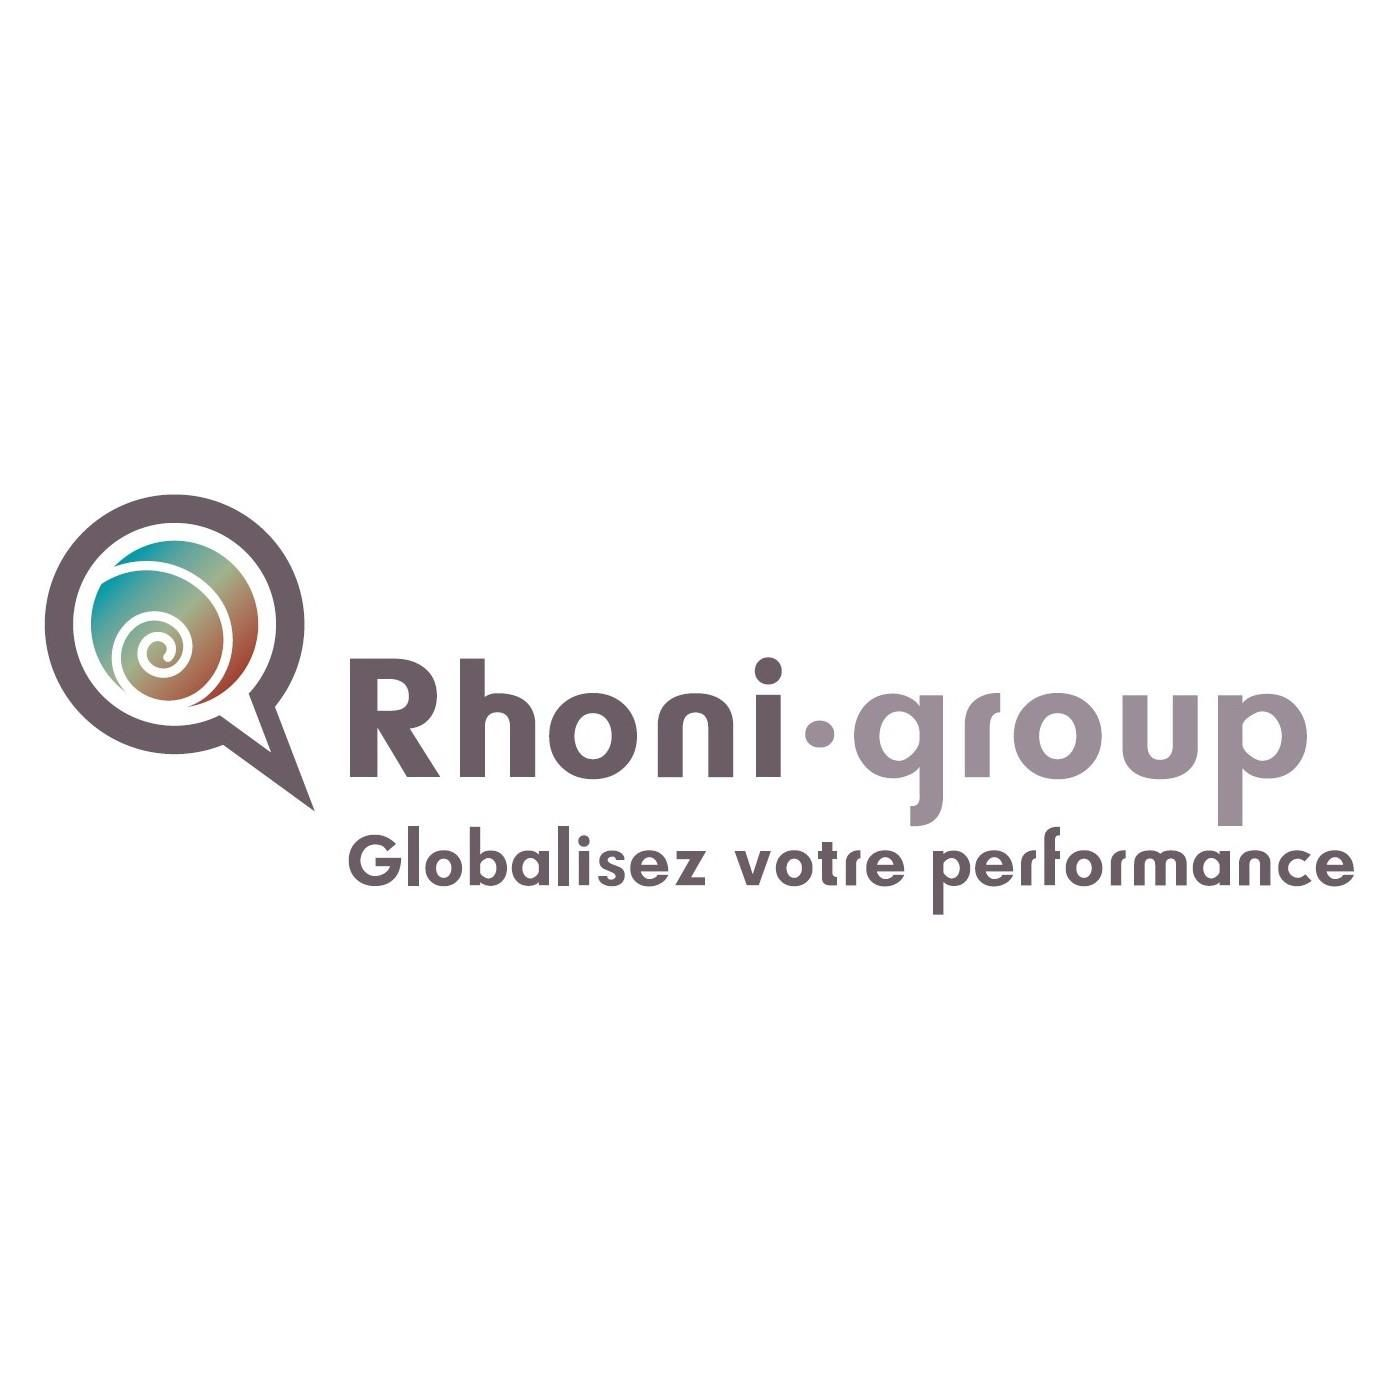 rhonigroup